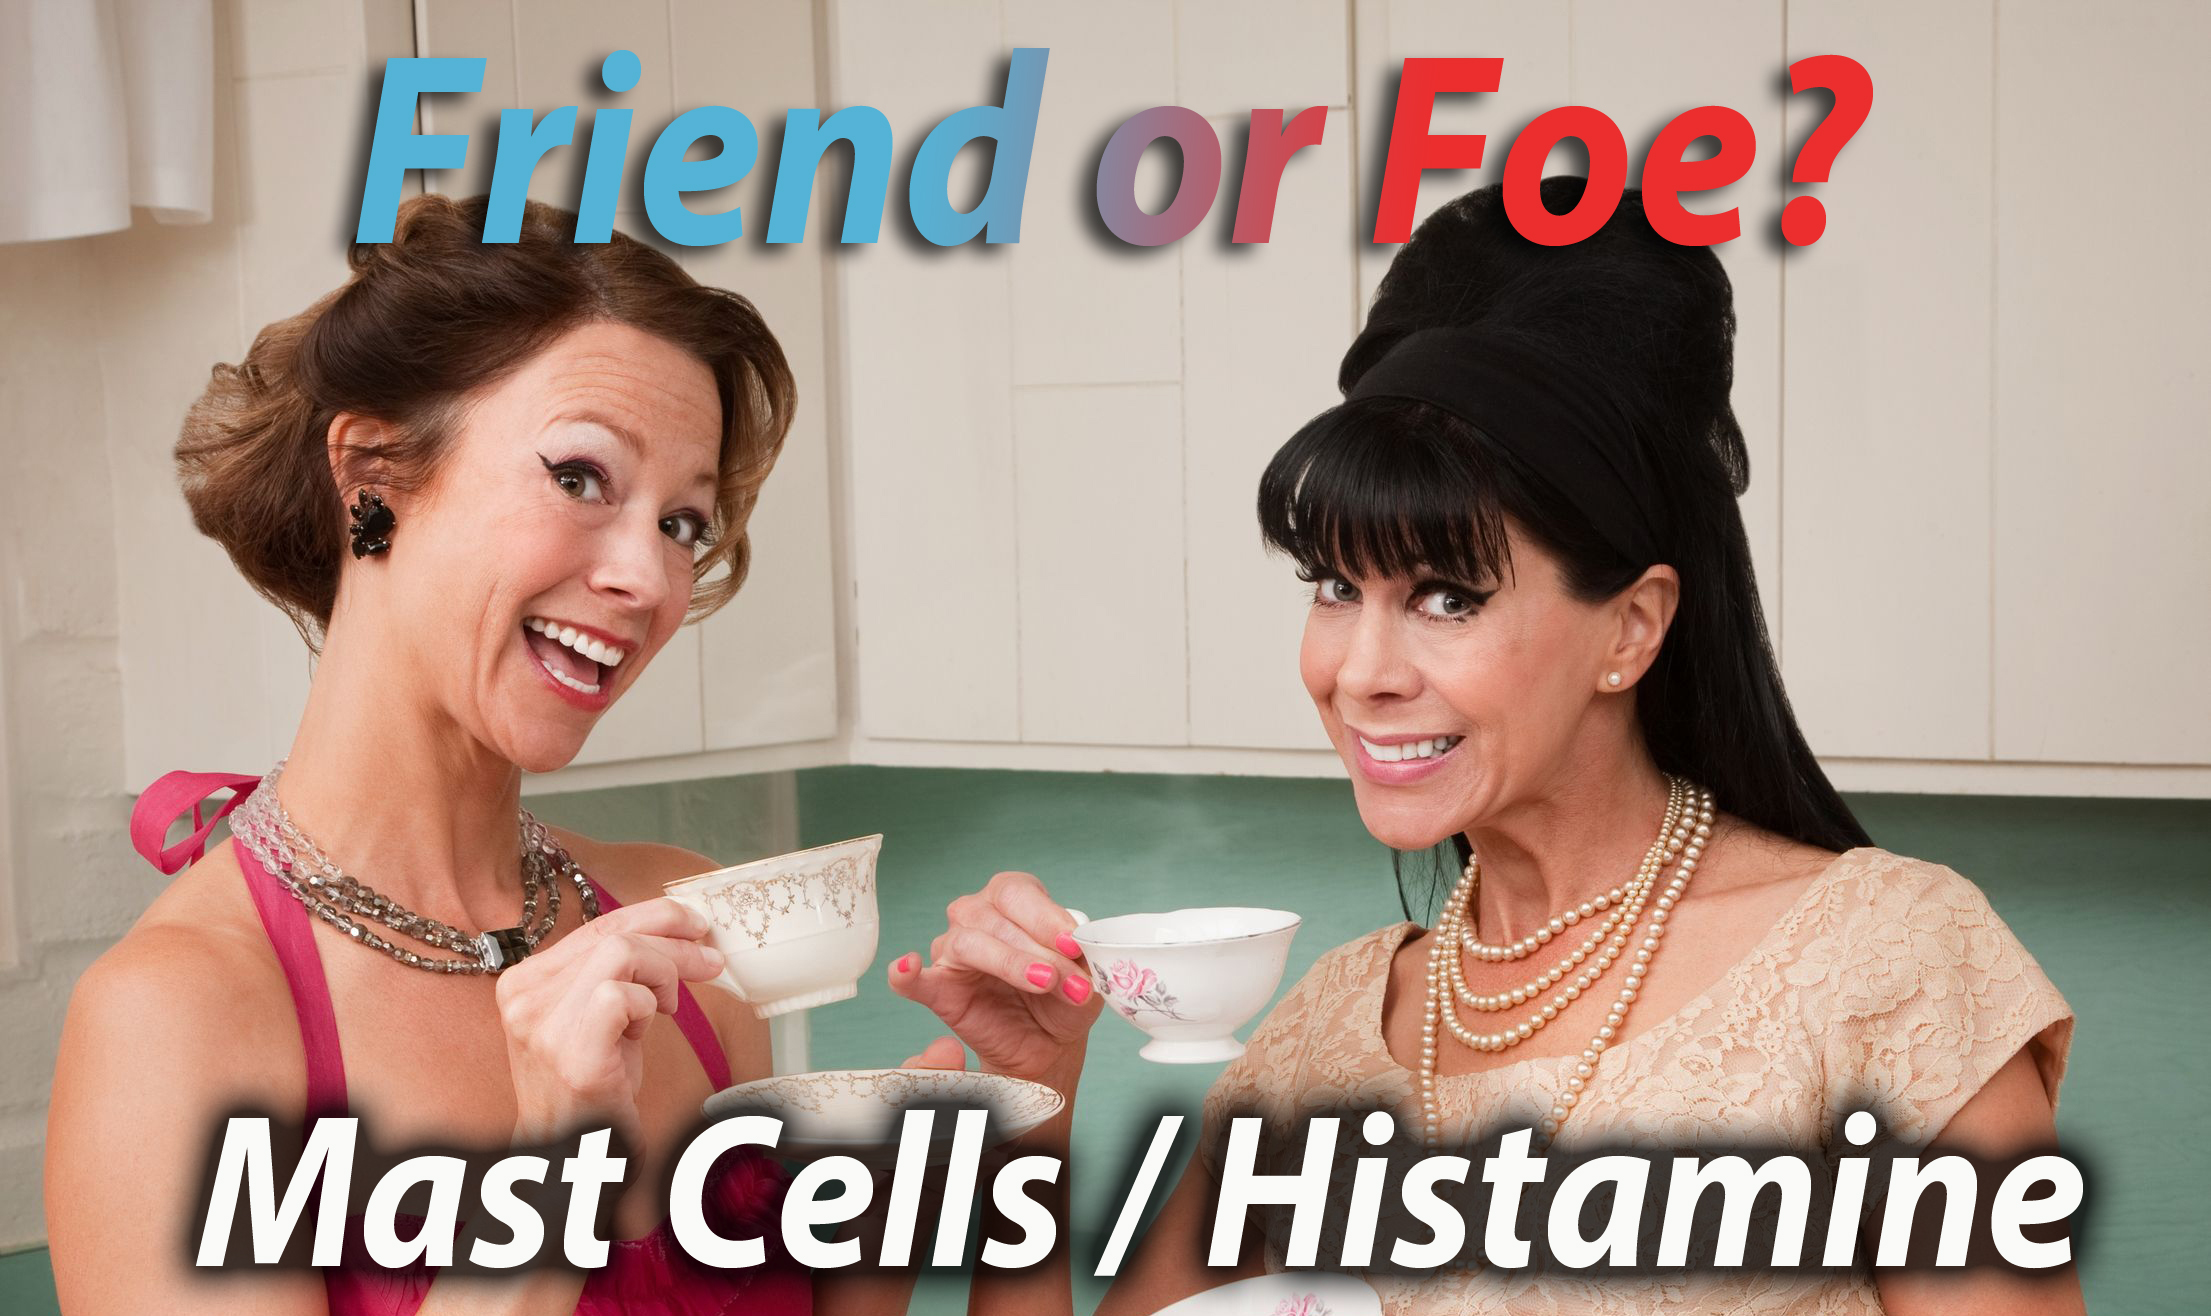 Mast Cells / Histamine: Friend or Foe!? - Healthcoach7